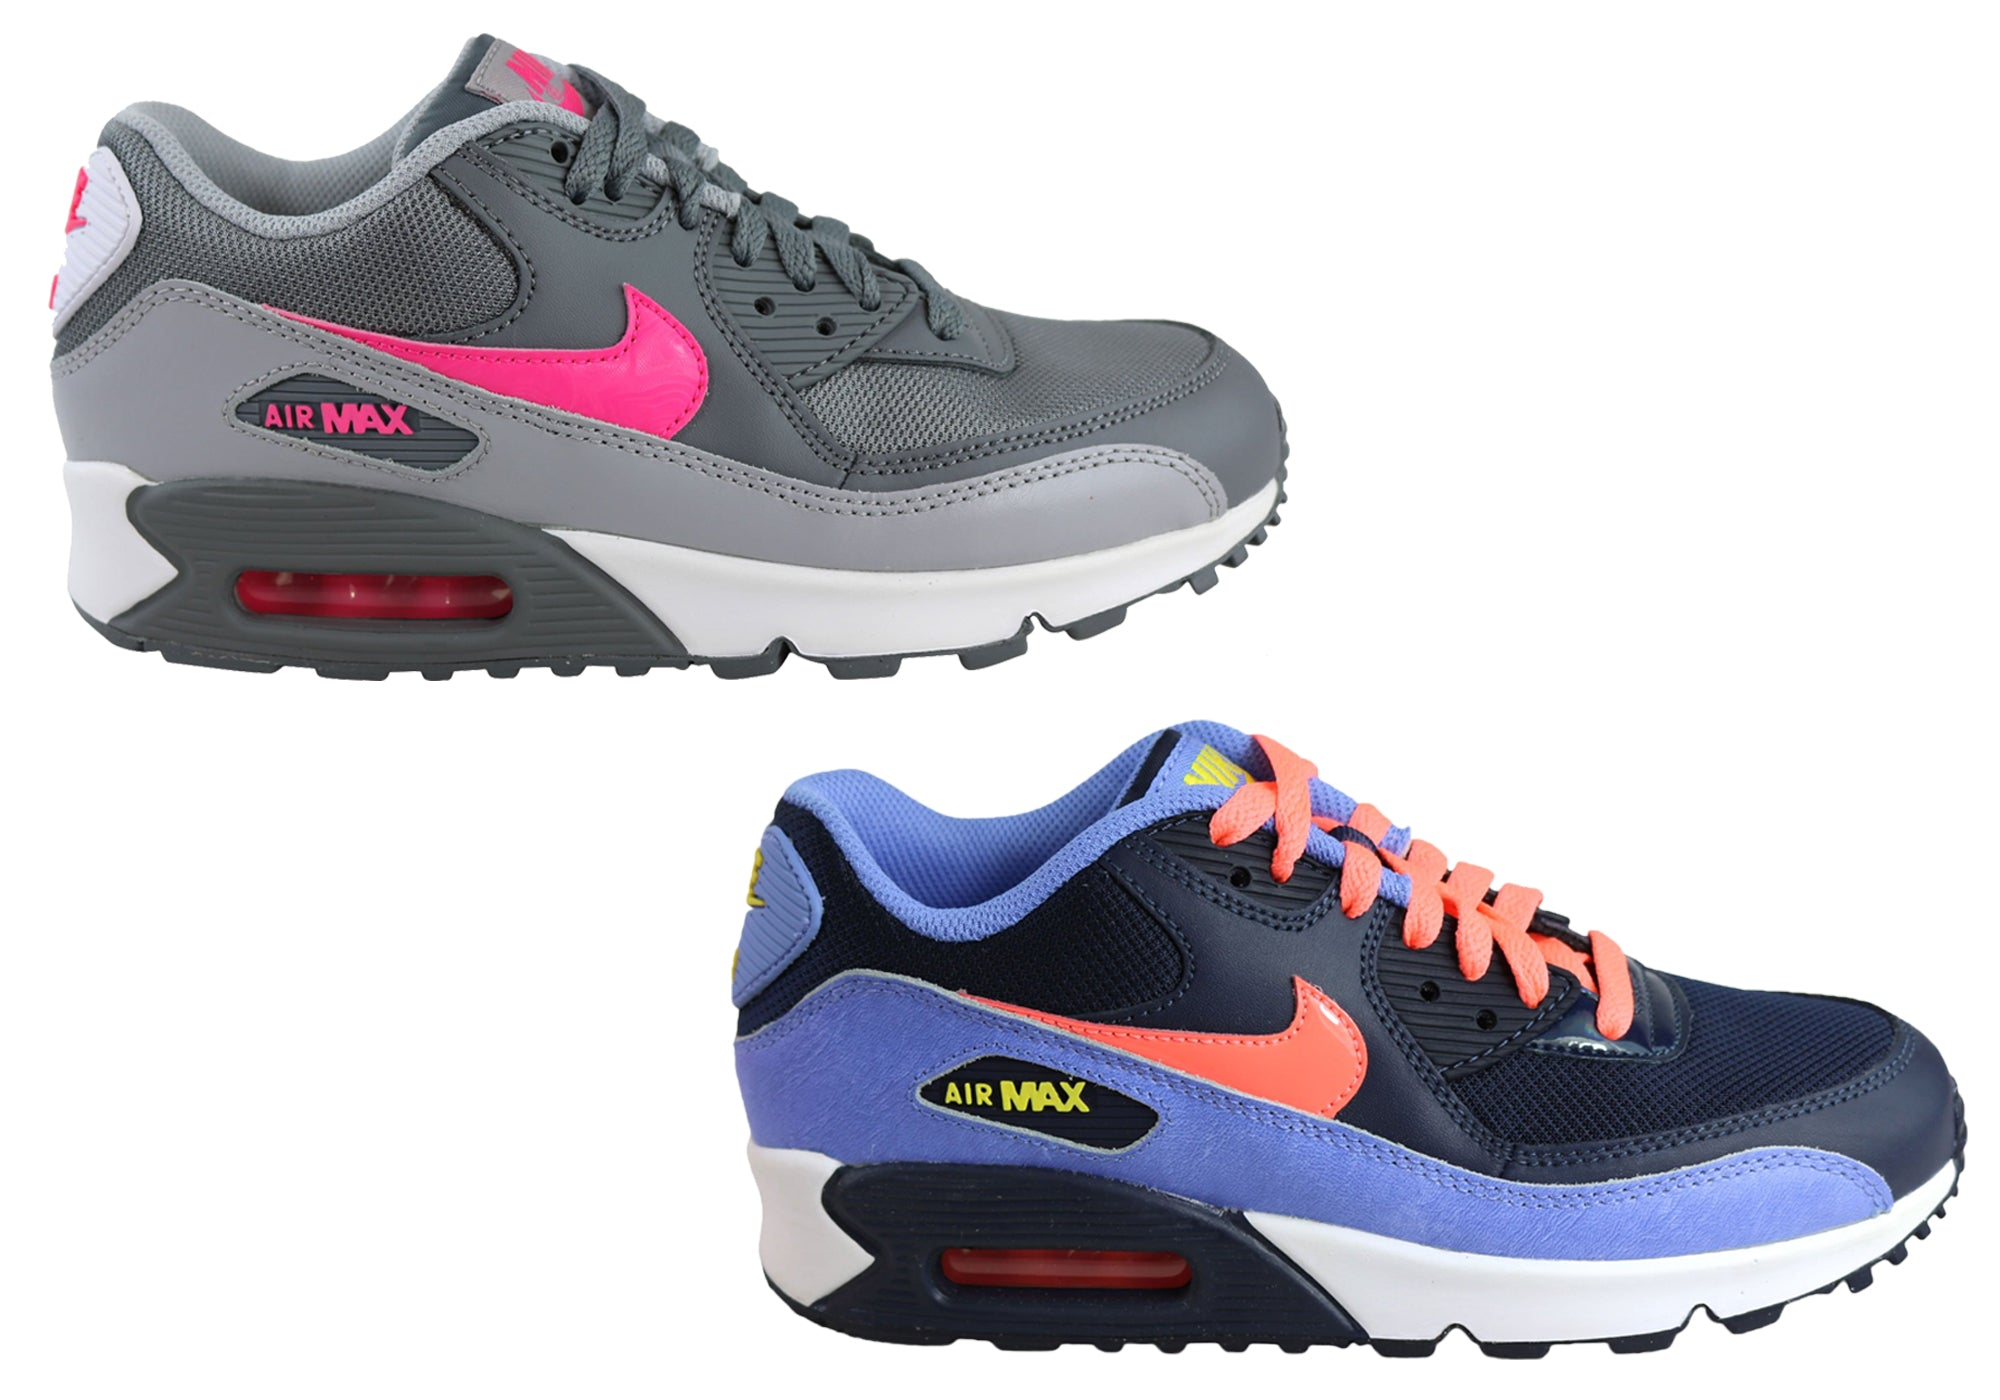 5c434fe0b6a0 NEW NIKE AIR MAX 90 (GS) OLDER KIDS GIRLS TRAINERS SPORT SHOES